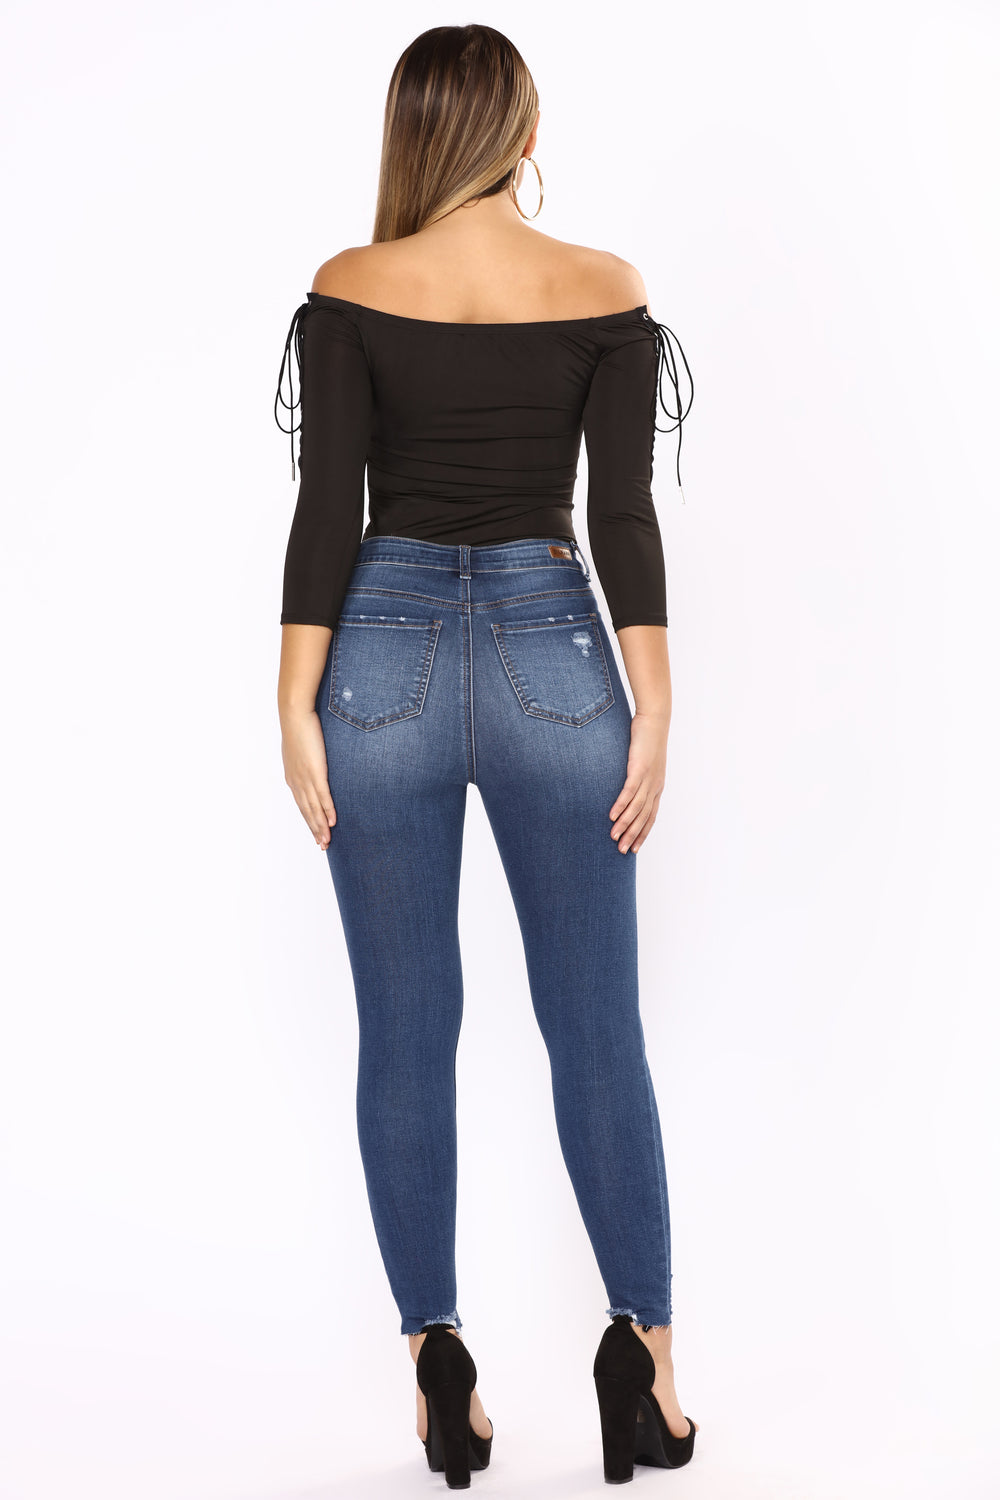 No Distressin' Over You Ankle Jeans - Medium Blue Wash